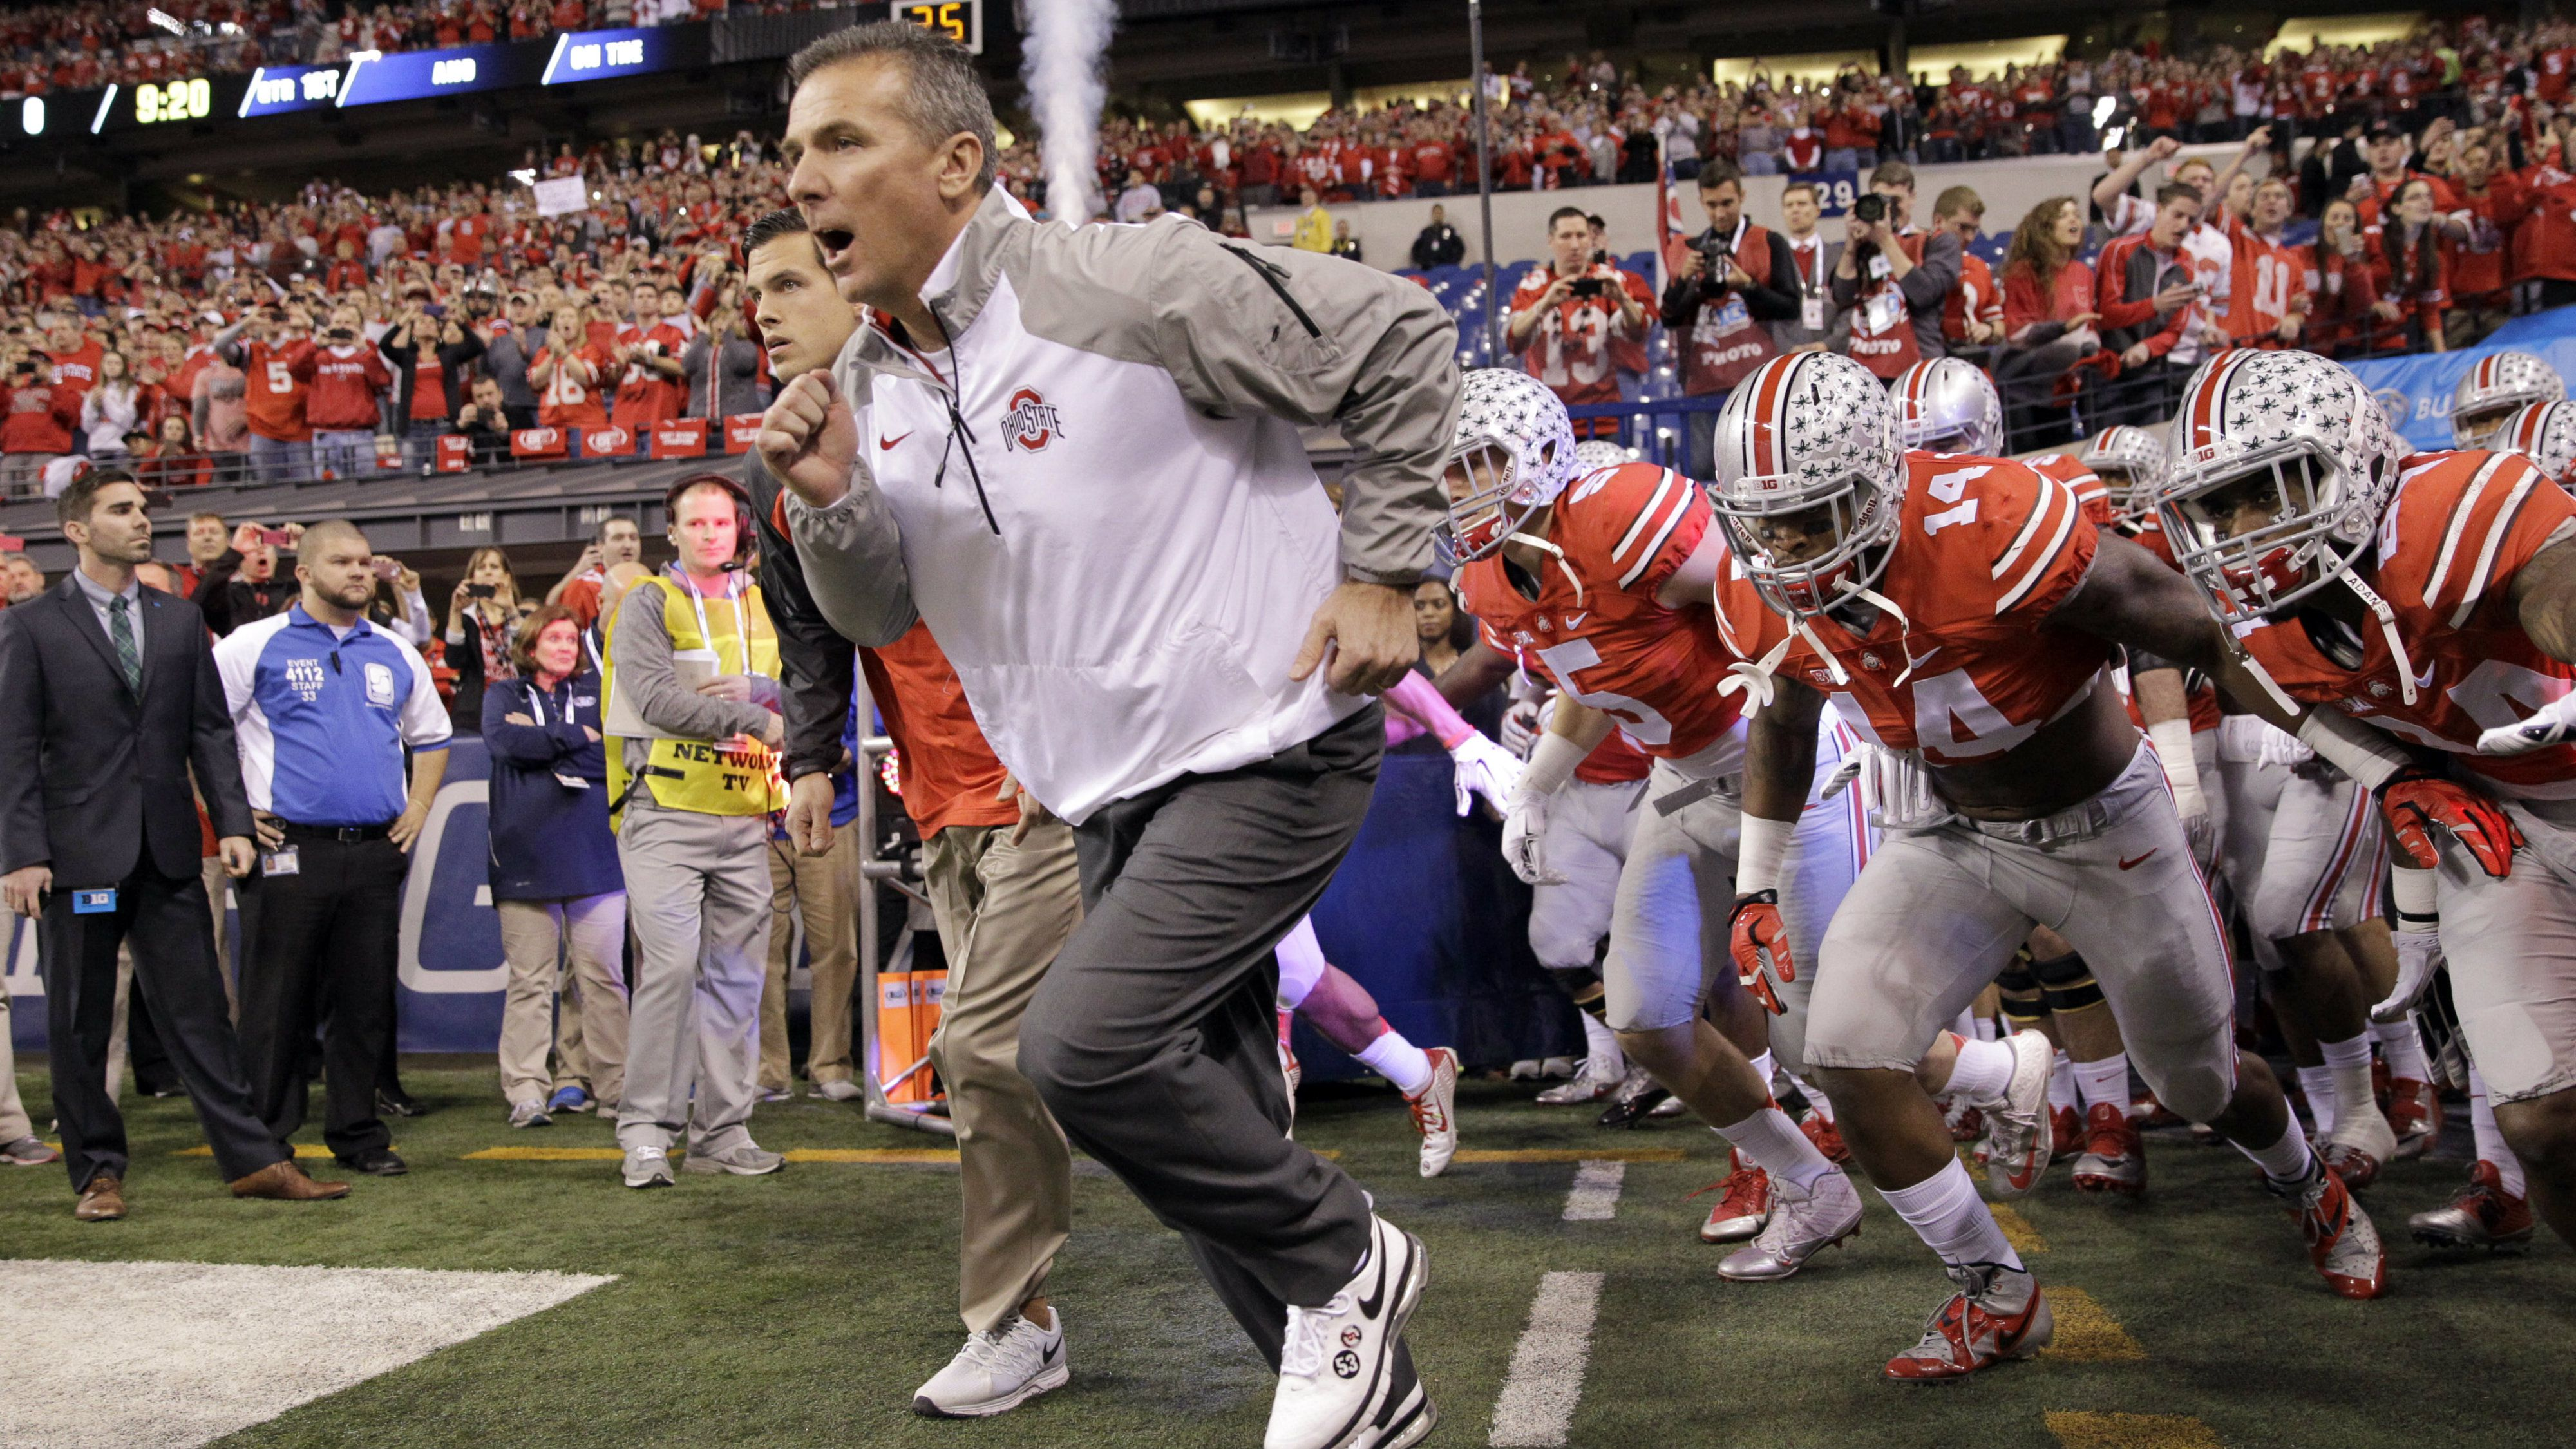 Ohio State head coach Urban Meyer runs onto the field with his team